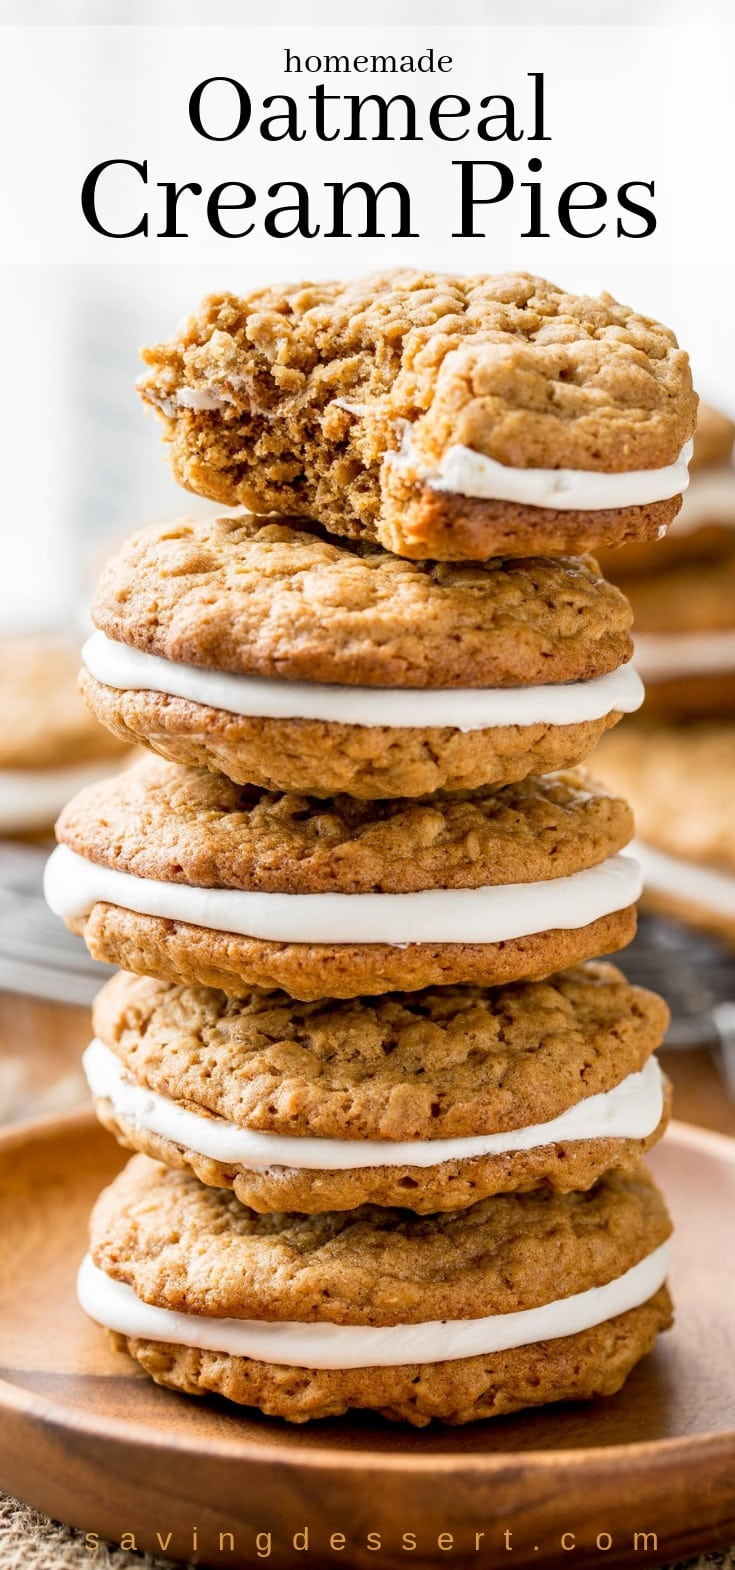 A stack of homemade Oatmeal cream pies